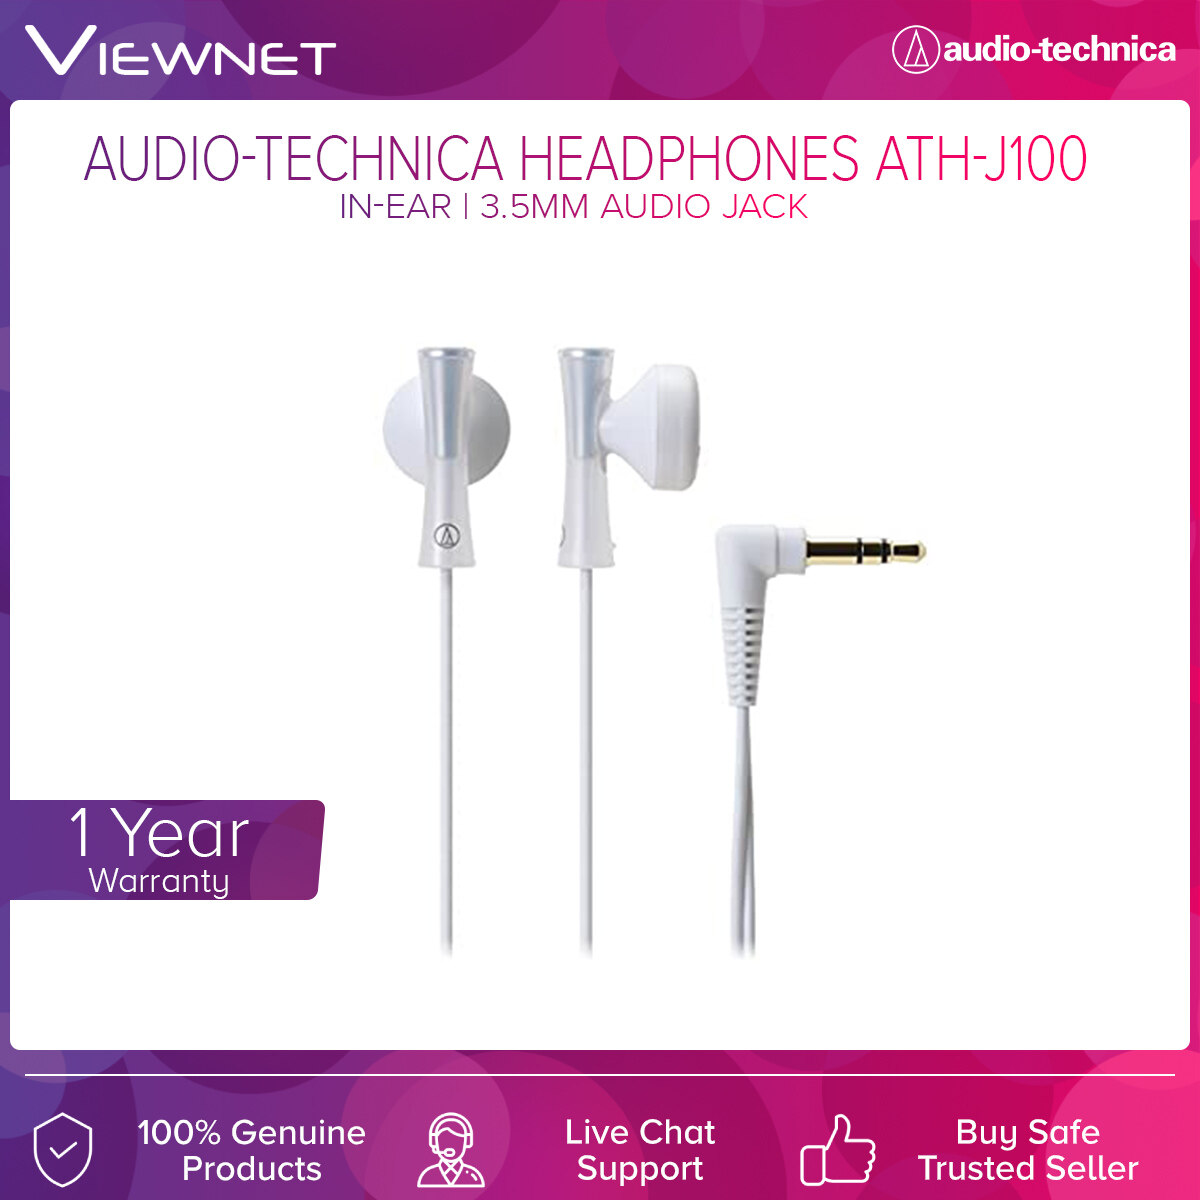 Audio-Technica In-Ear Headphone (ATH-J100) with 3.5mm Audio Jack, 13.5mm Driver, 1.2m Length, Lightweight, L-Shape